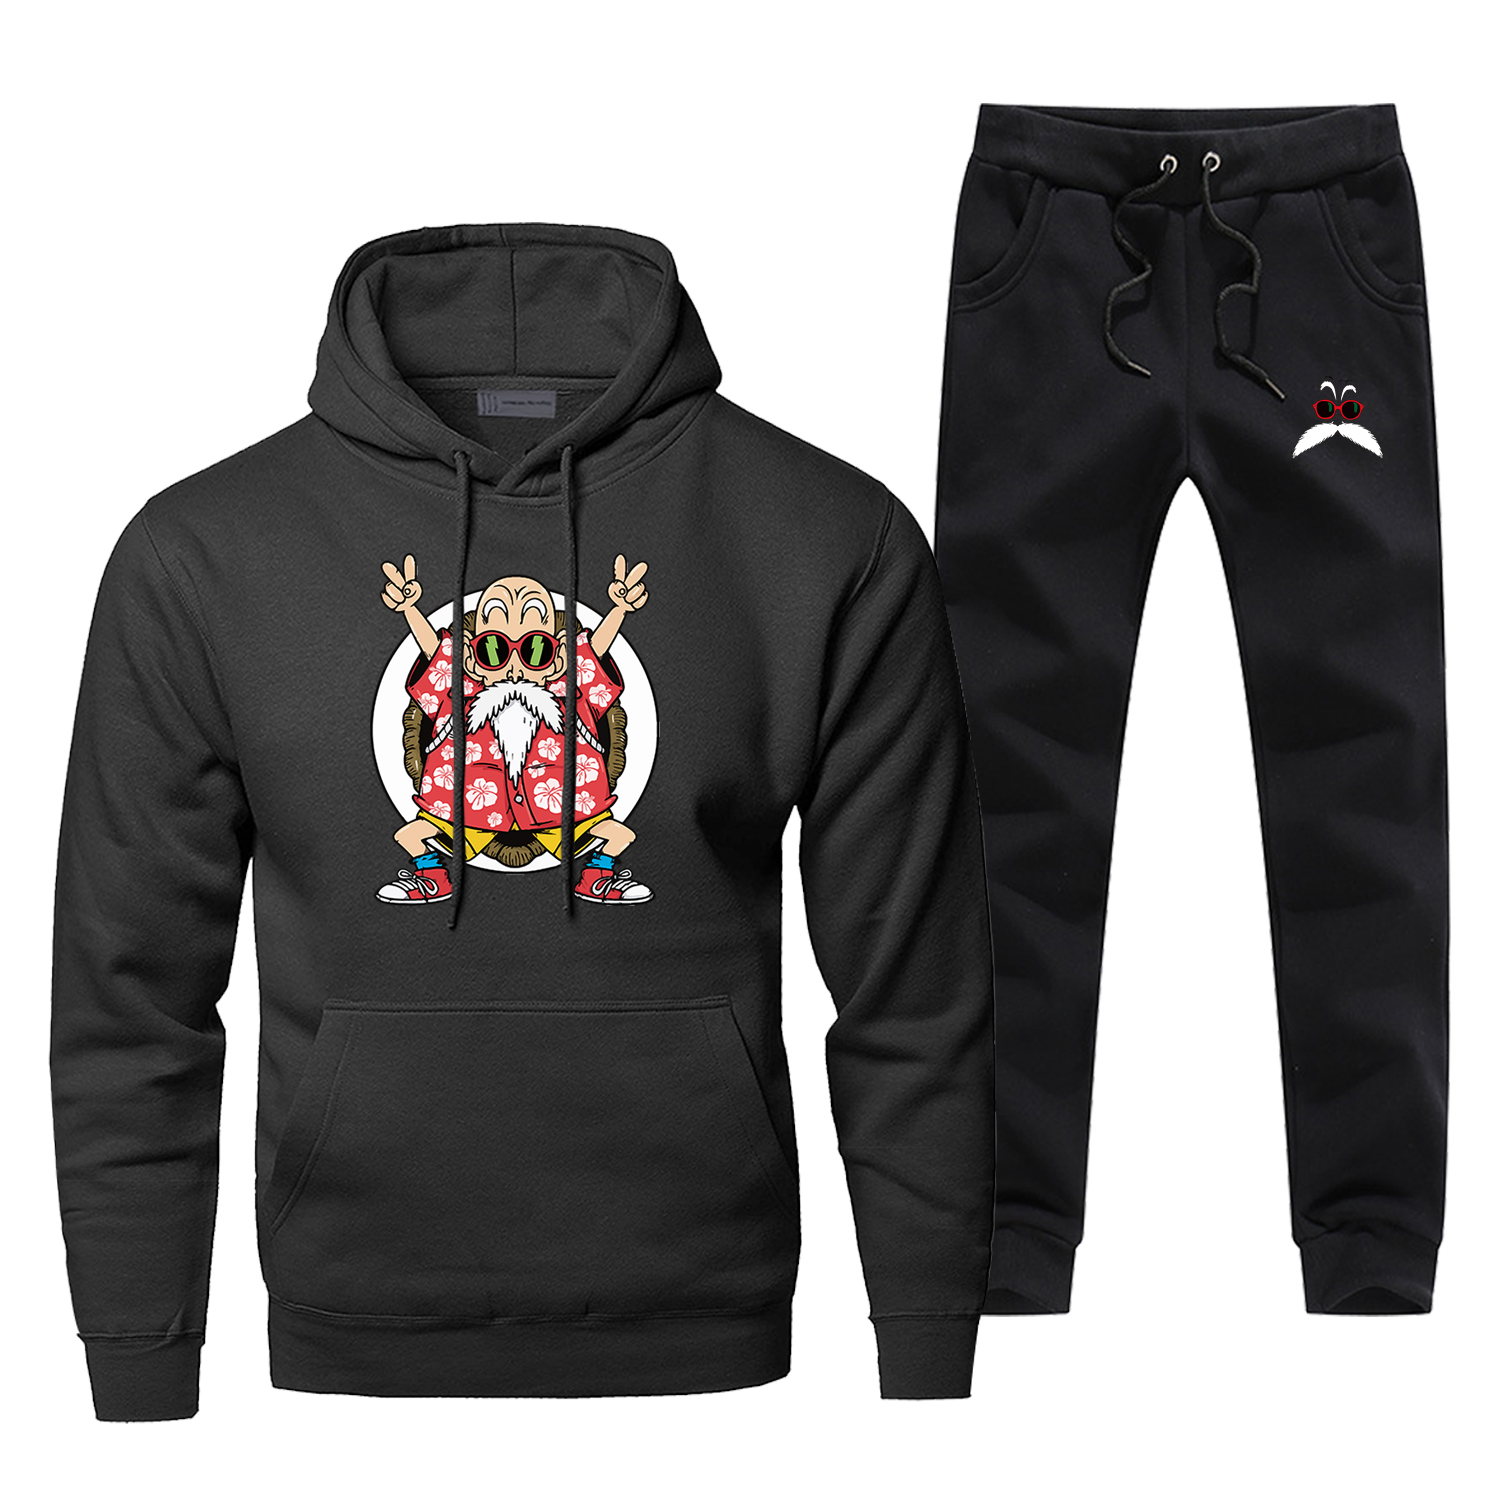 Hoodies Pants Sets Men Master Roshi Dragon Ball Suit Tracksuit 2 Piece Tops Pant Sweatshirt Funny Sportswear Autumn Sports Set